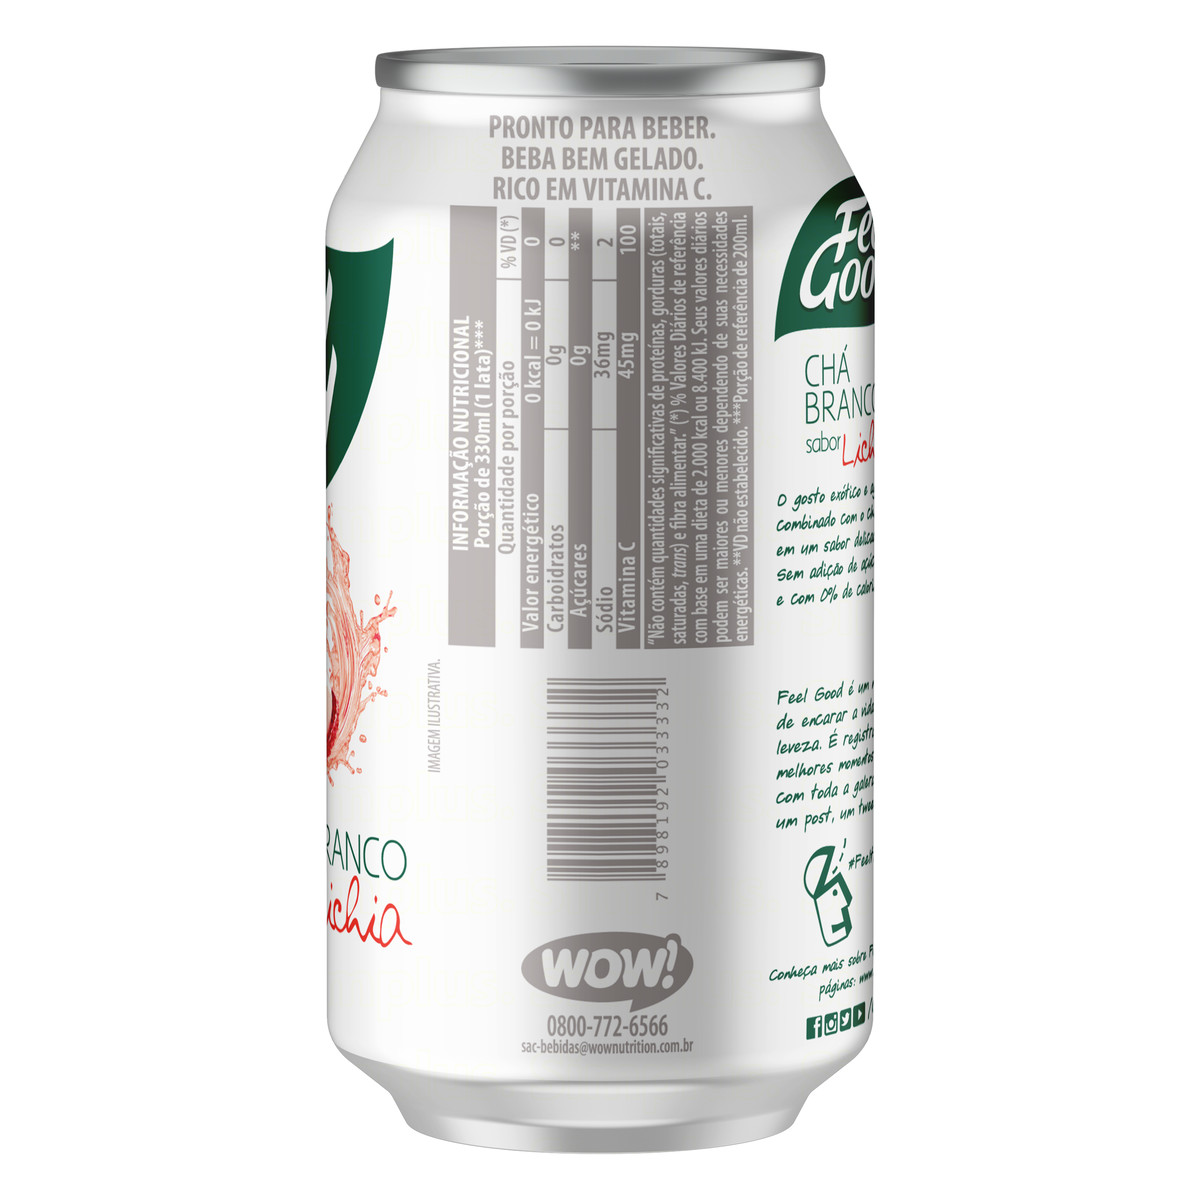 7898192033332 - CHÁ BRANCO FEEL GOOD COM LICHIA LATA 330ML